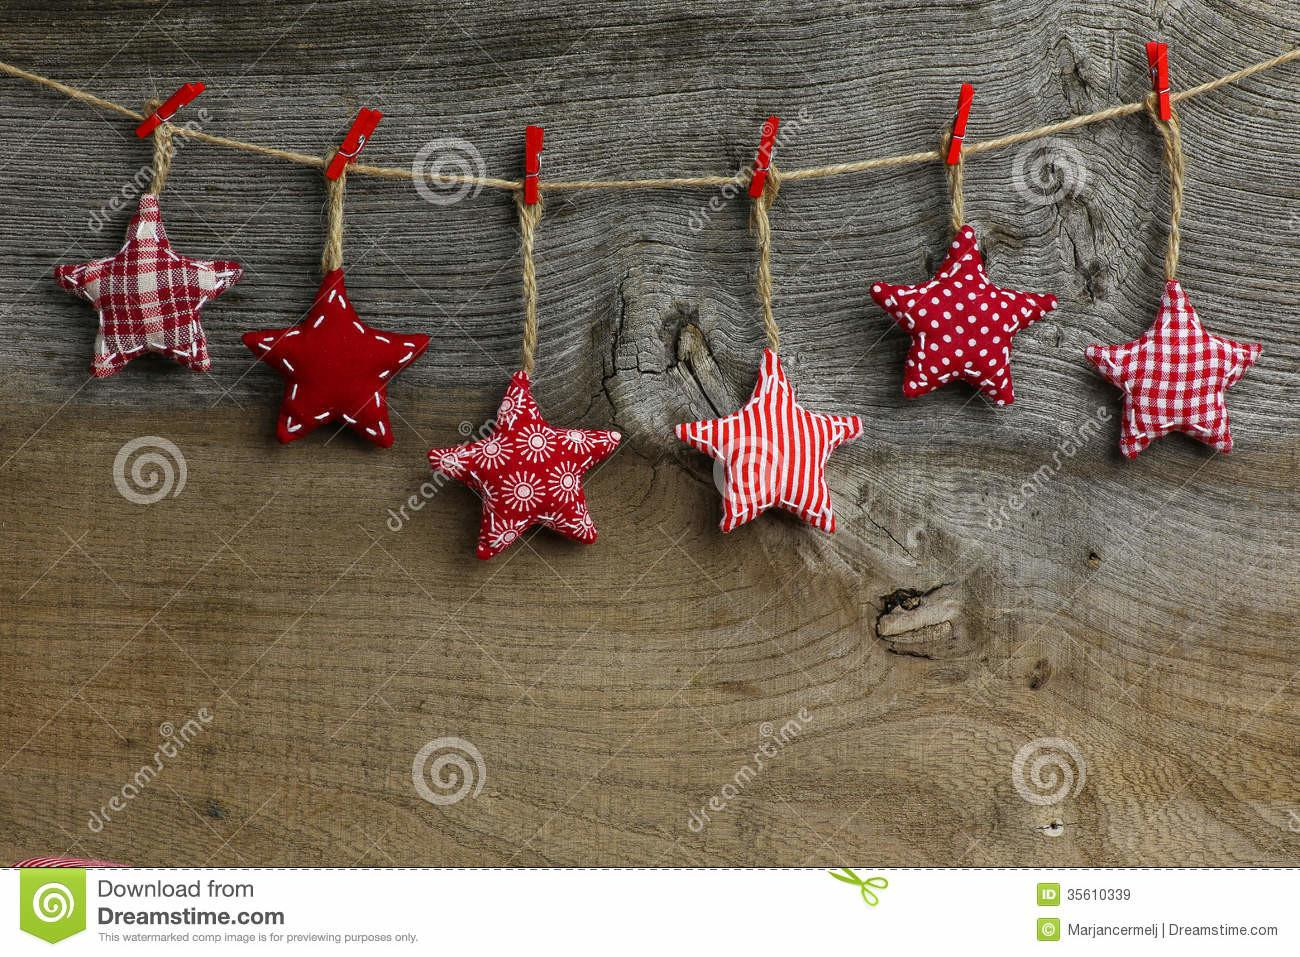 Merry Christmas Hanging Decoration Red White Pattern